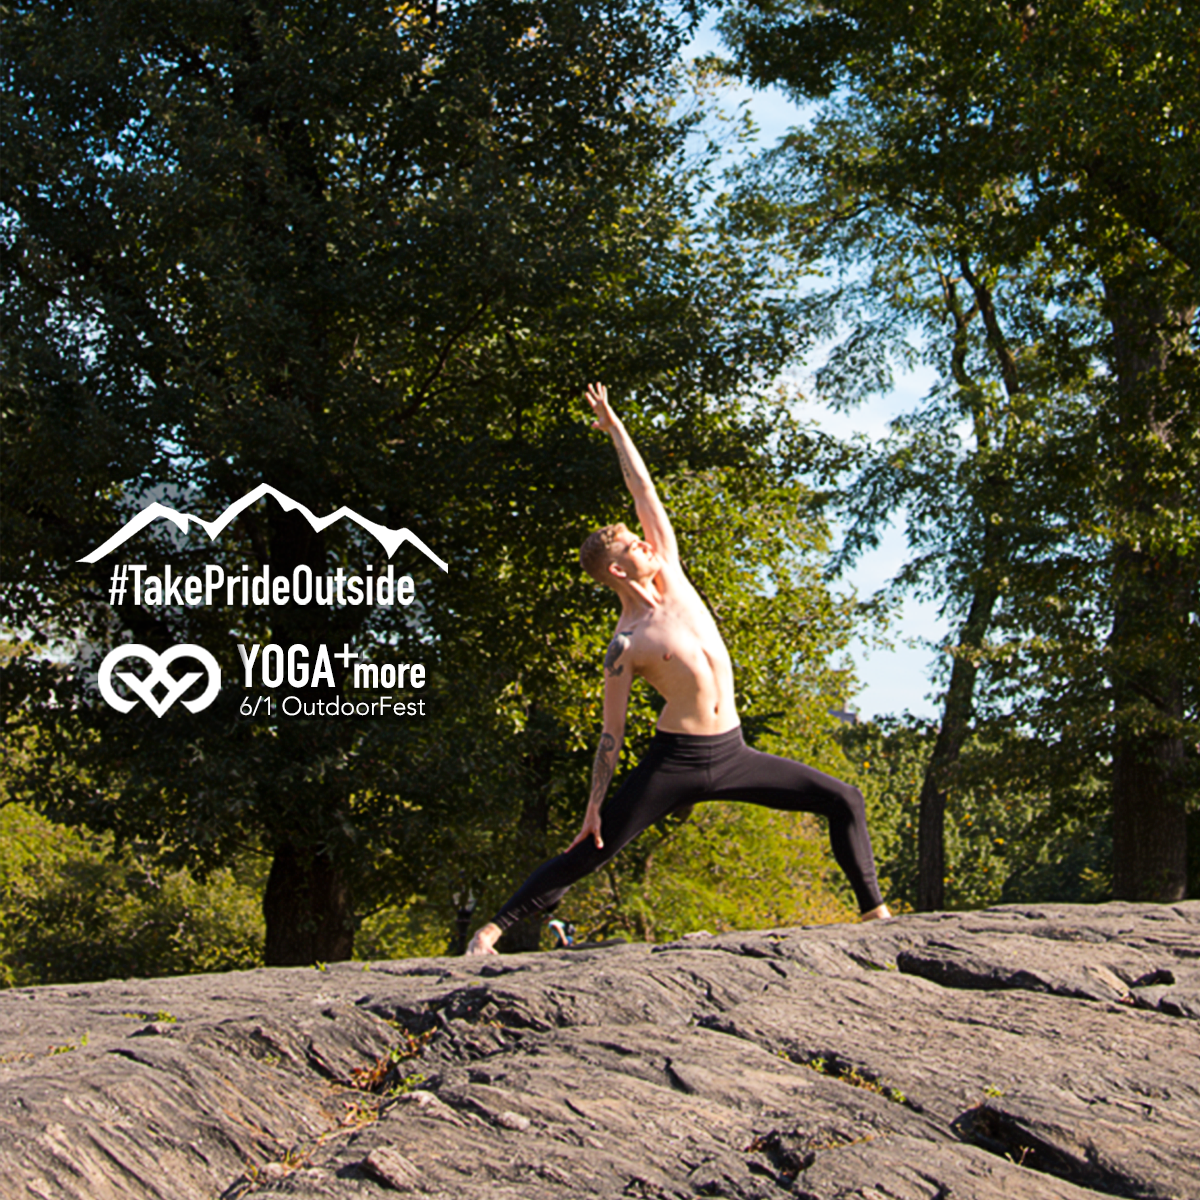 Jun 1 Yoga AtOutdoorFest - Live in the city but love the outdoors? break free at outdoorfests's weekend summer campout. So many activities all weekend. AND, Get Out and trek will be there doing YOGa!** CLOSED **